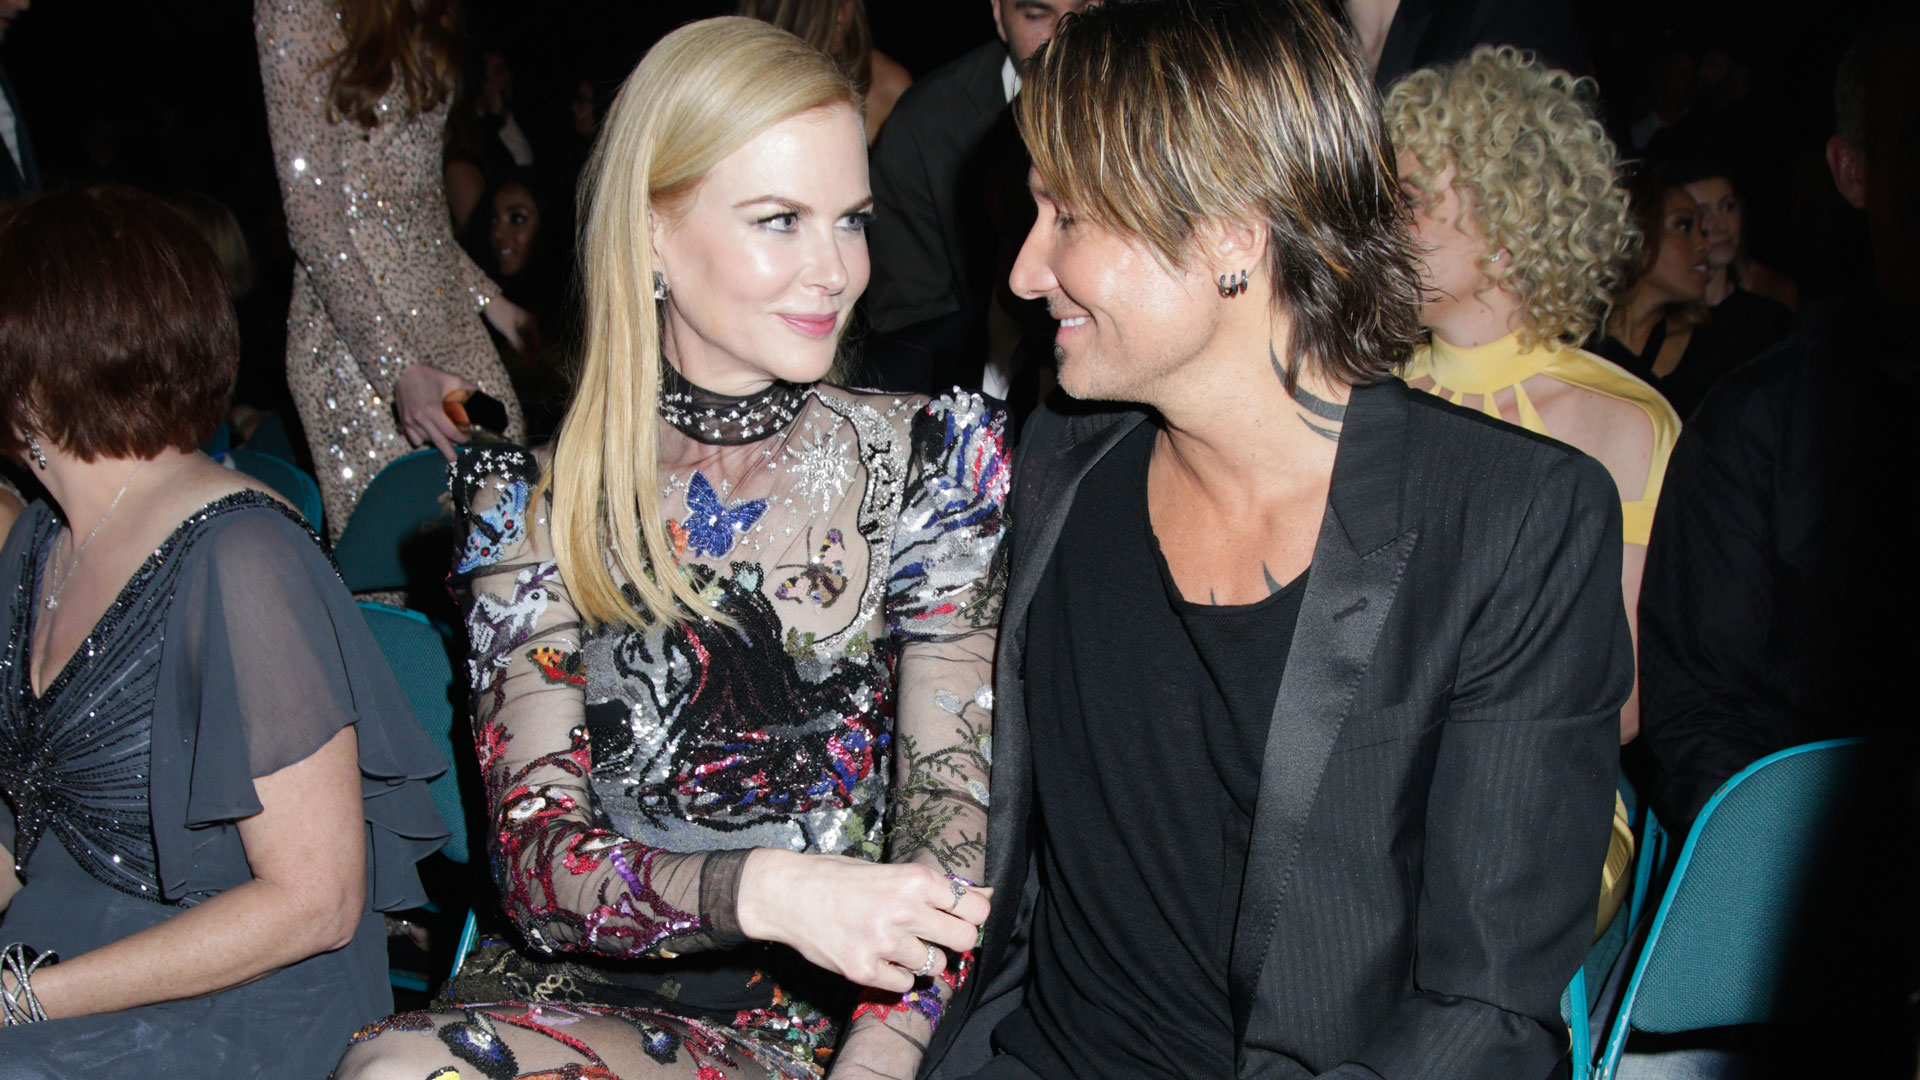 Actress Nicole Kidman exchanged loving glances with her husband, singer Keith Urban, before he took to the ACM stage to perform